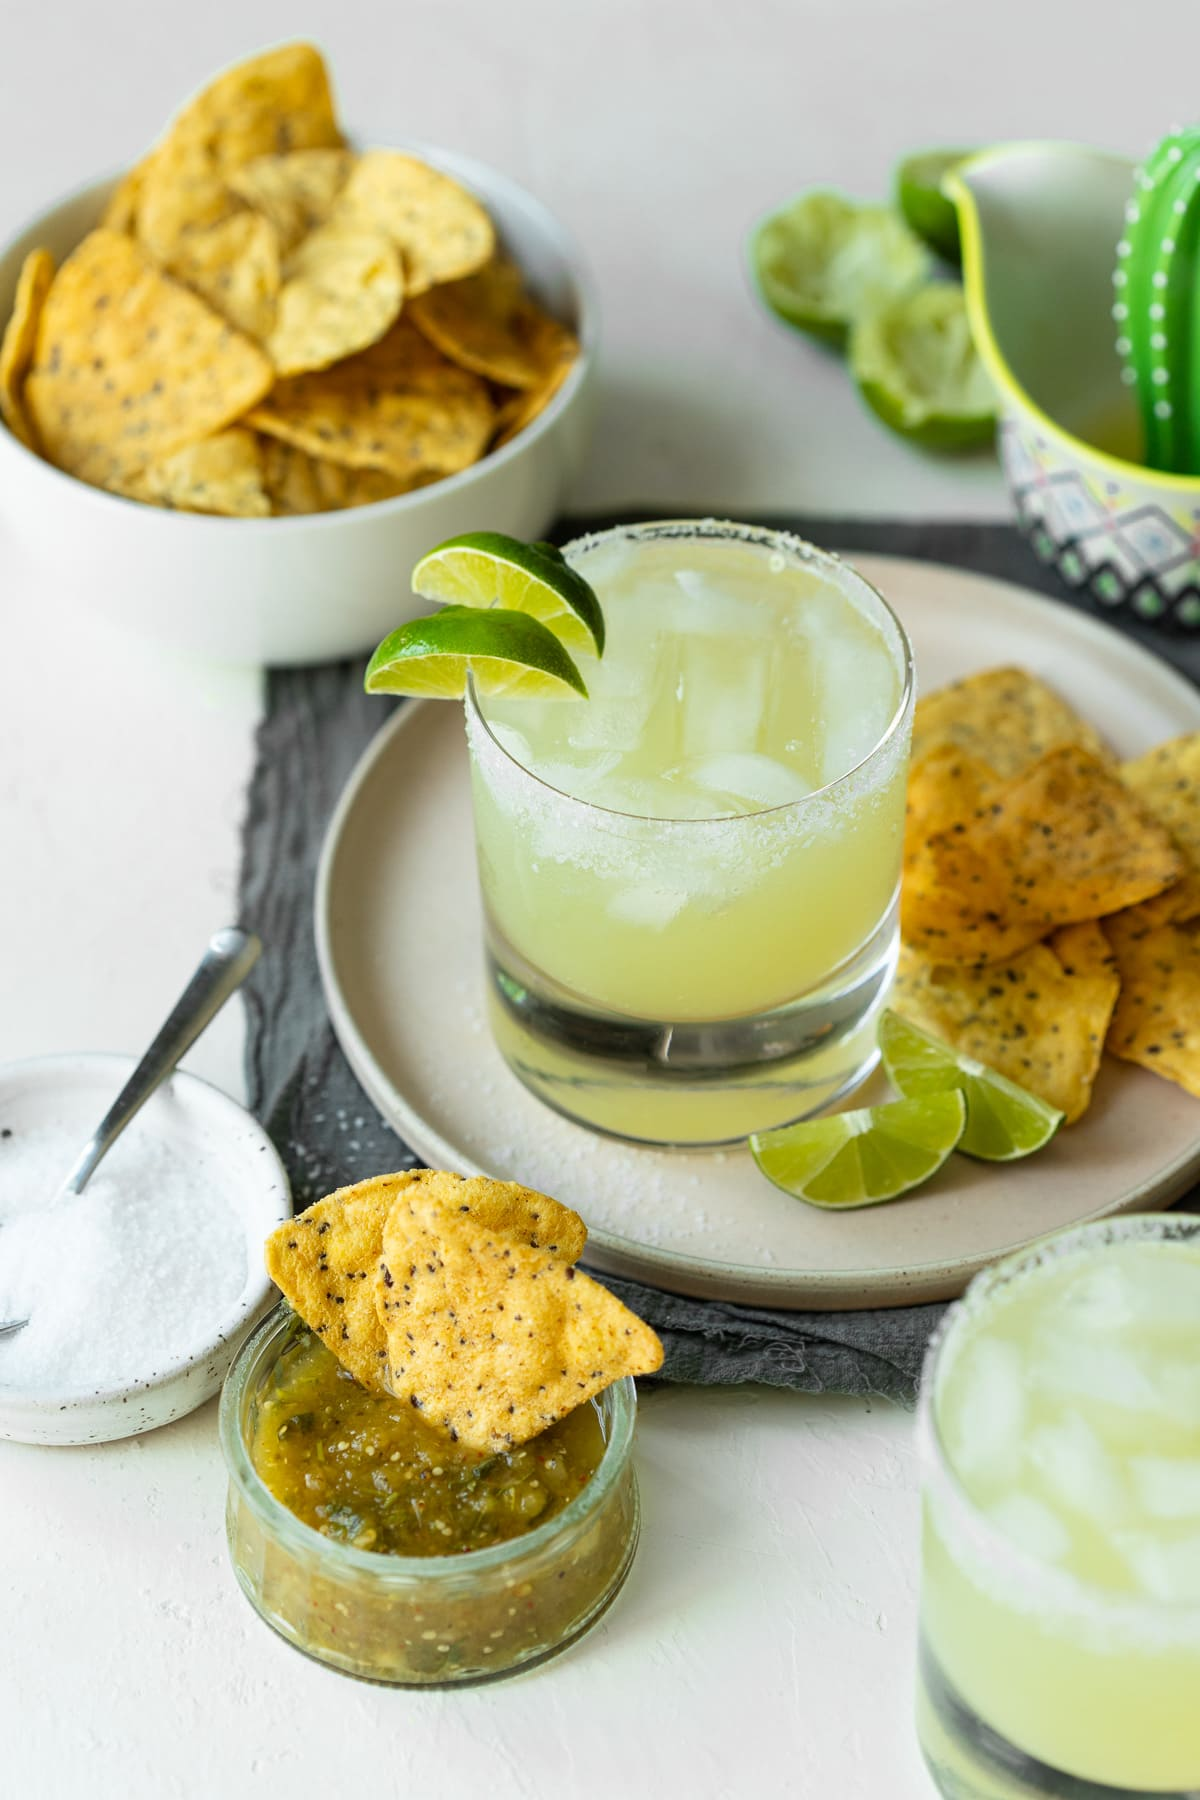 Margarita on the rocks with chips and salsa.